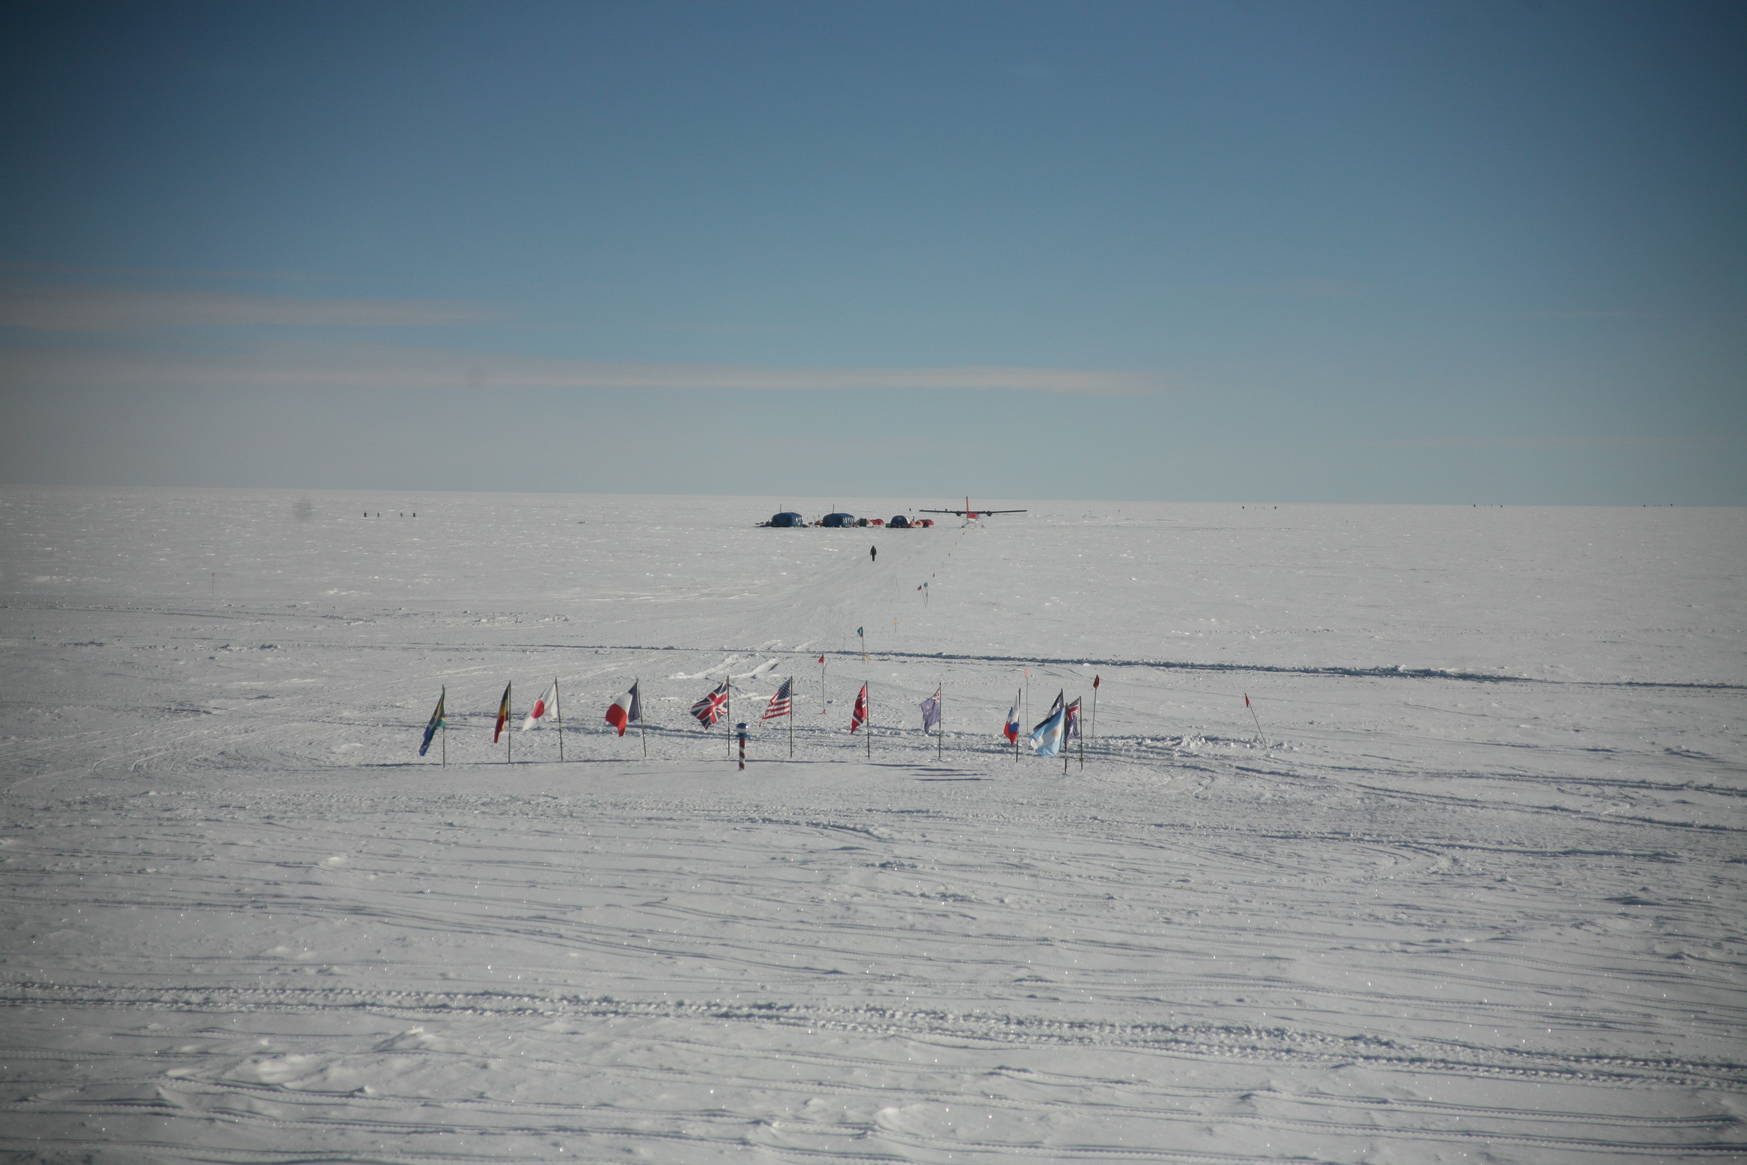 Finally, the ceremonial south pole! This picture was taken from one of our galley windows. In the background: a tourist camp site.